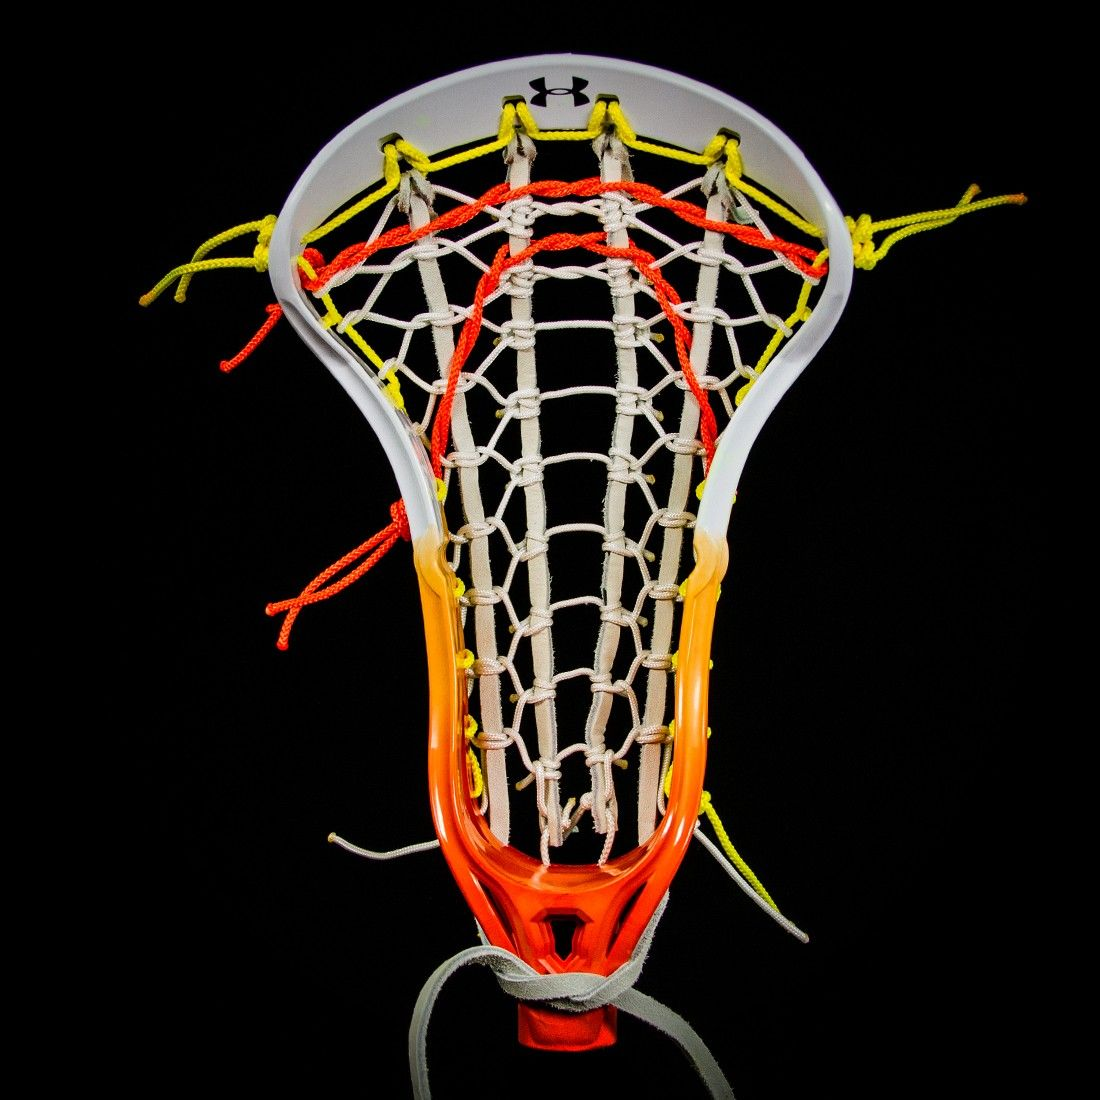 Lacrosse Unlimited Exclusive Design White Orange Fade Girls Complete Head Wch Hand Crafted Dyed Head And C Girls Lacrosse Sticks Lacrosse Girls Lacrosse Gear